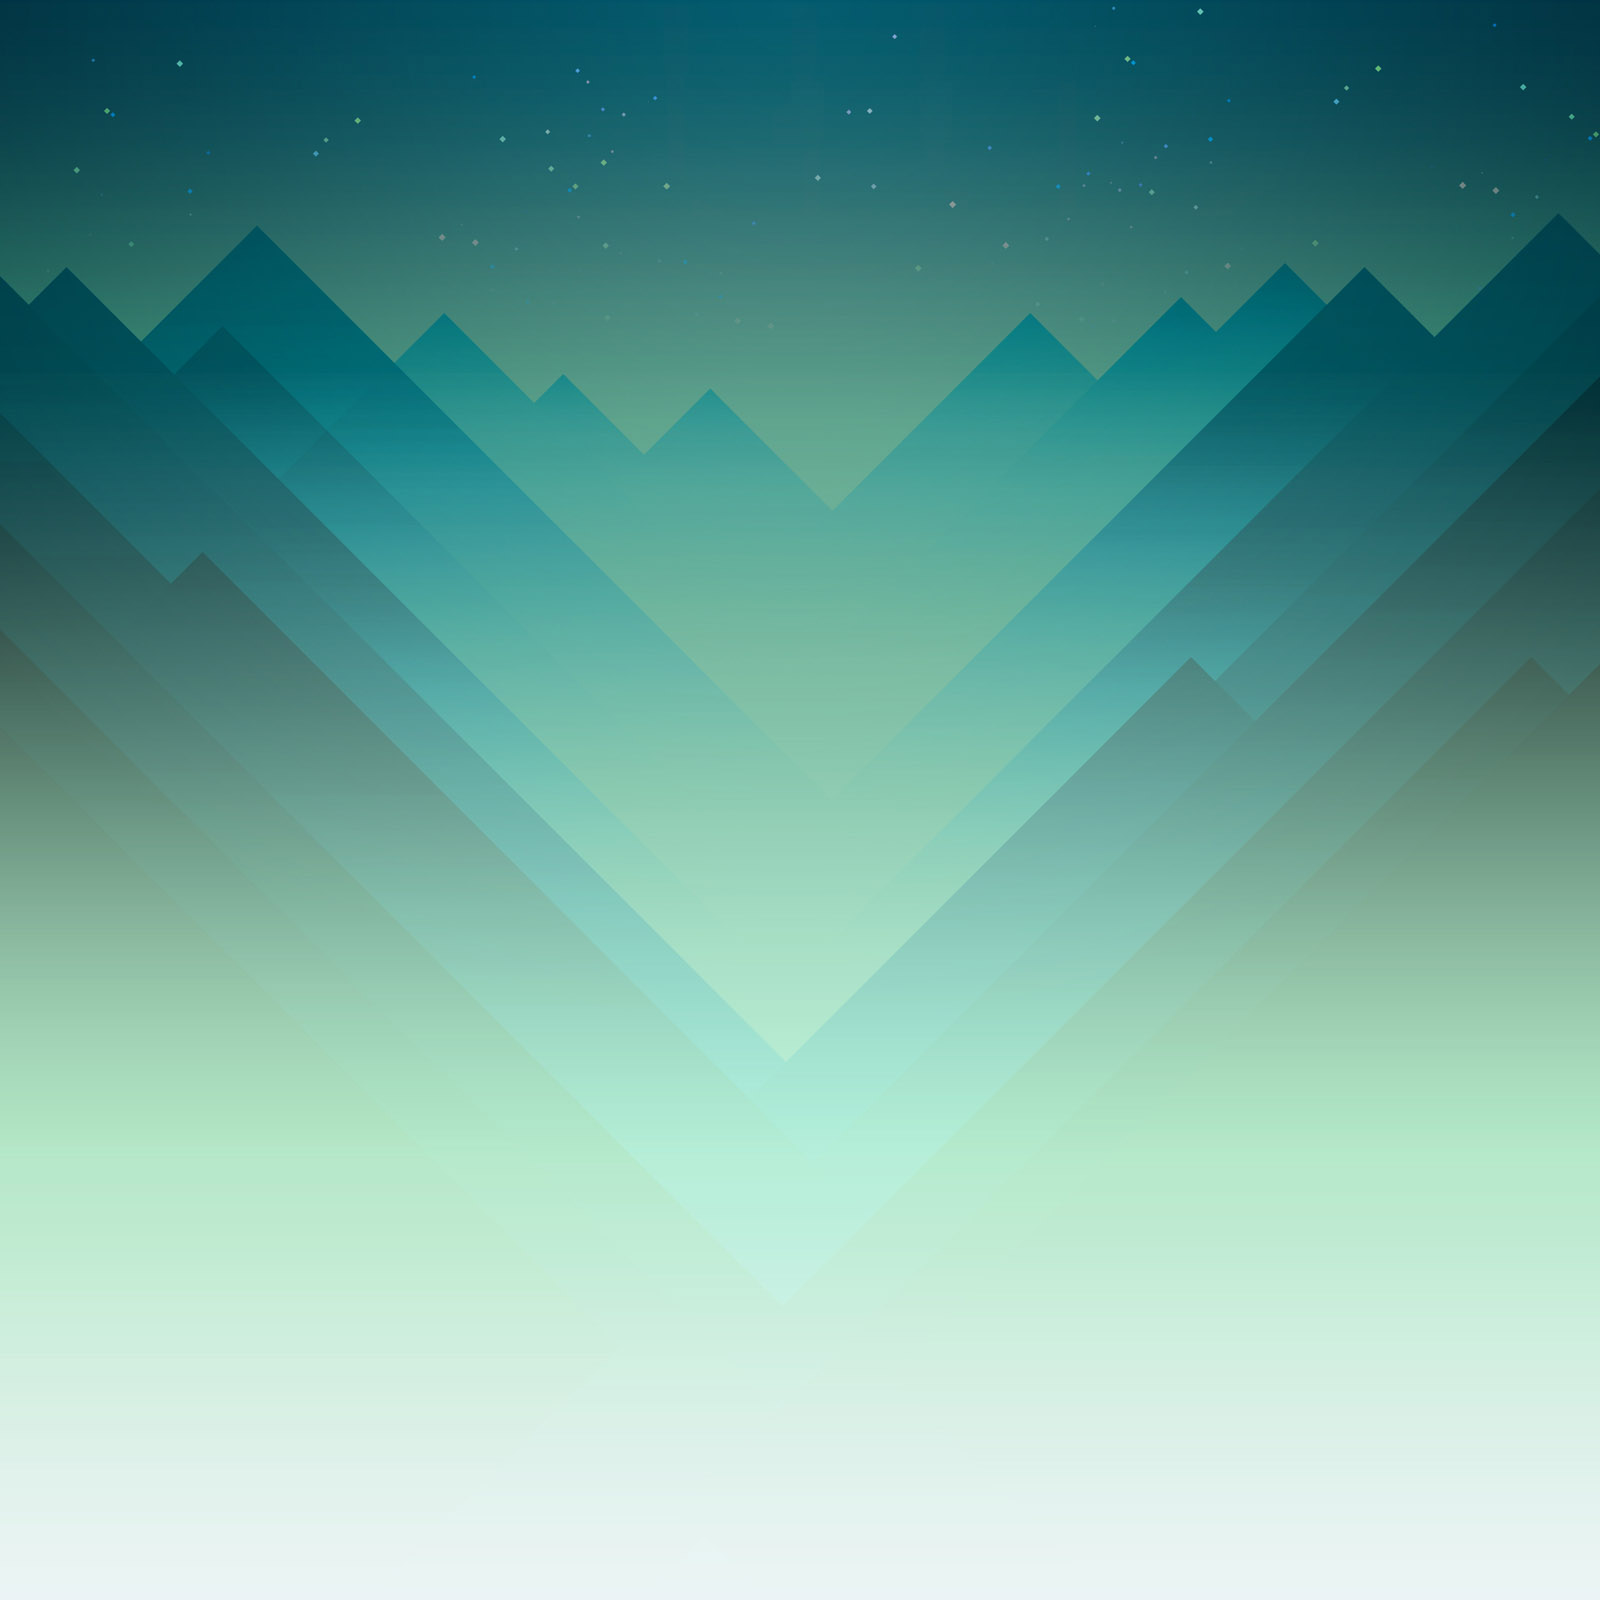 Monument Valley Game Wallpaper Wallpapersafari